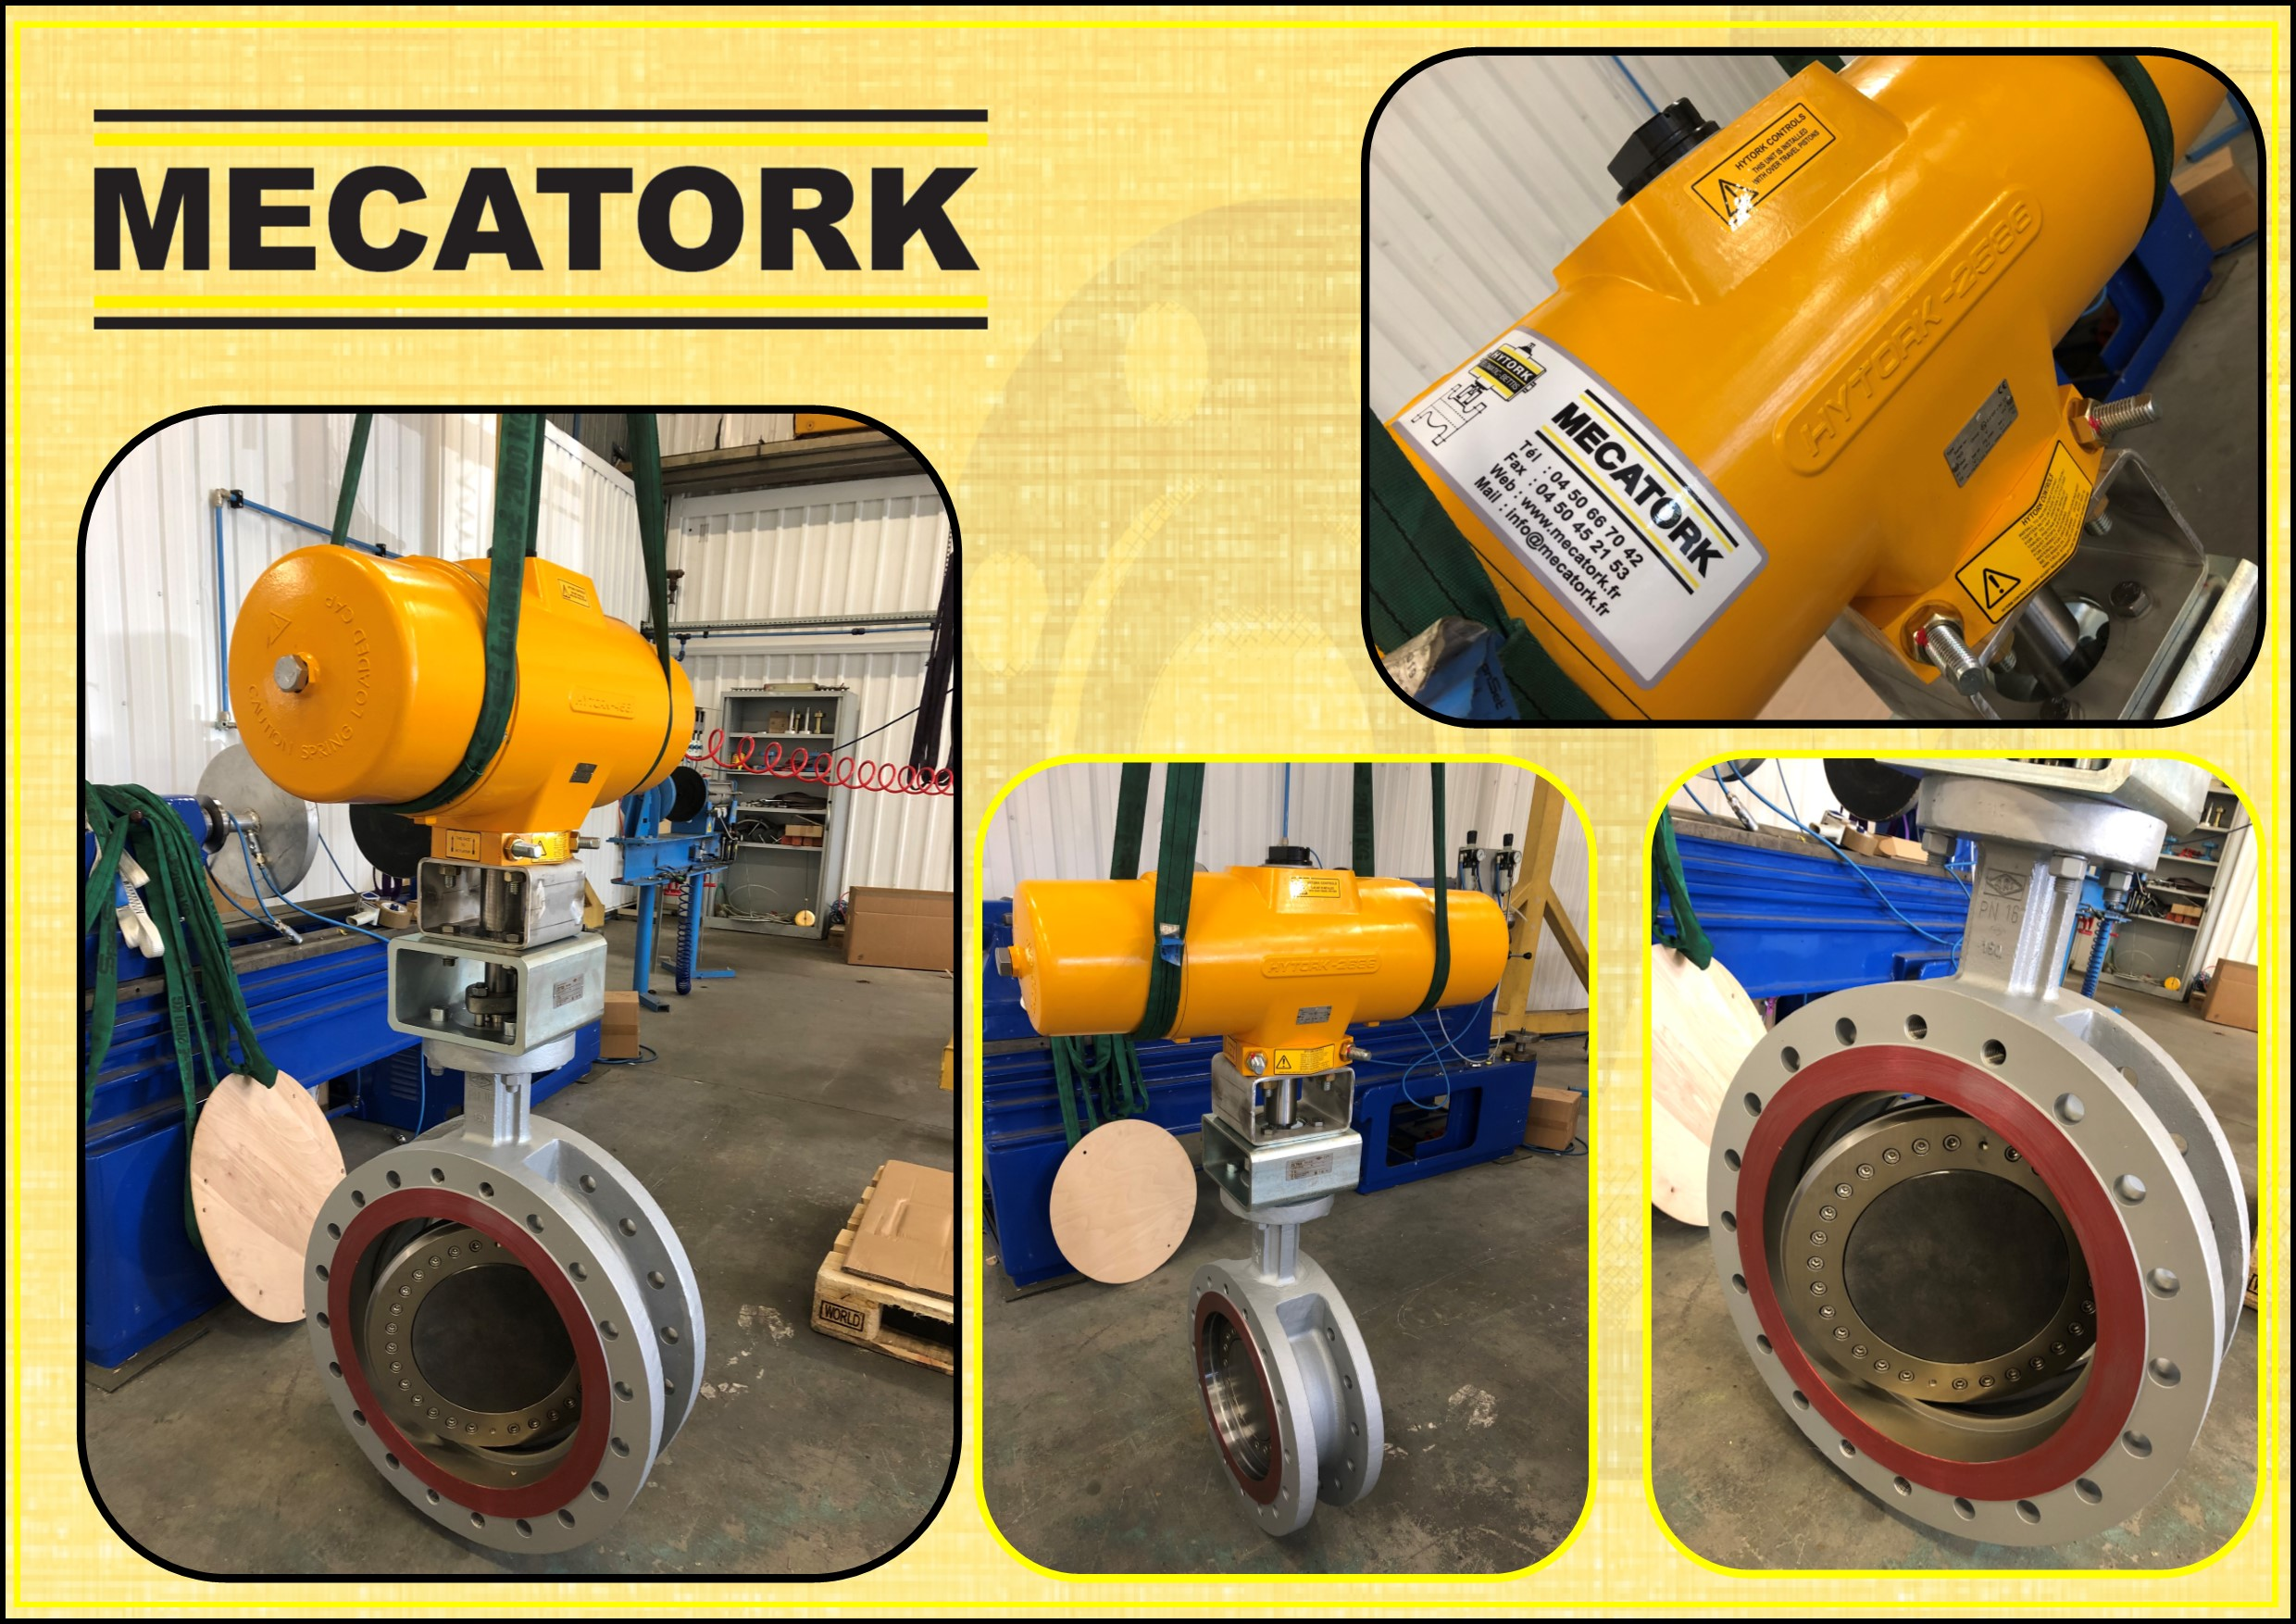 DN 350 triple offset butterfly valve with Hytork actuator